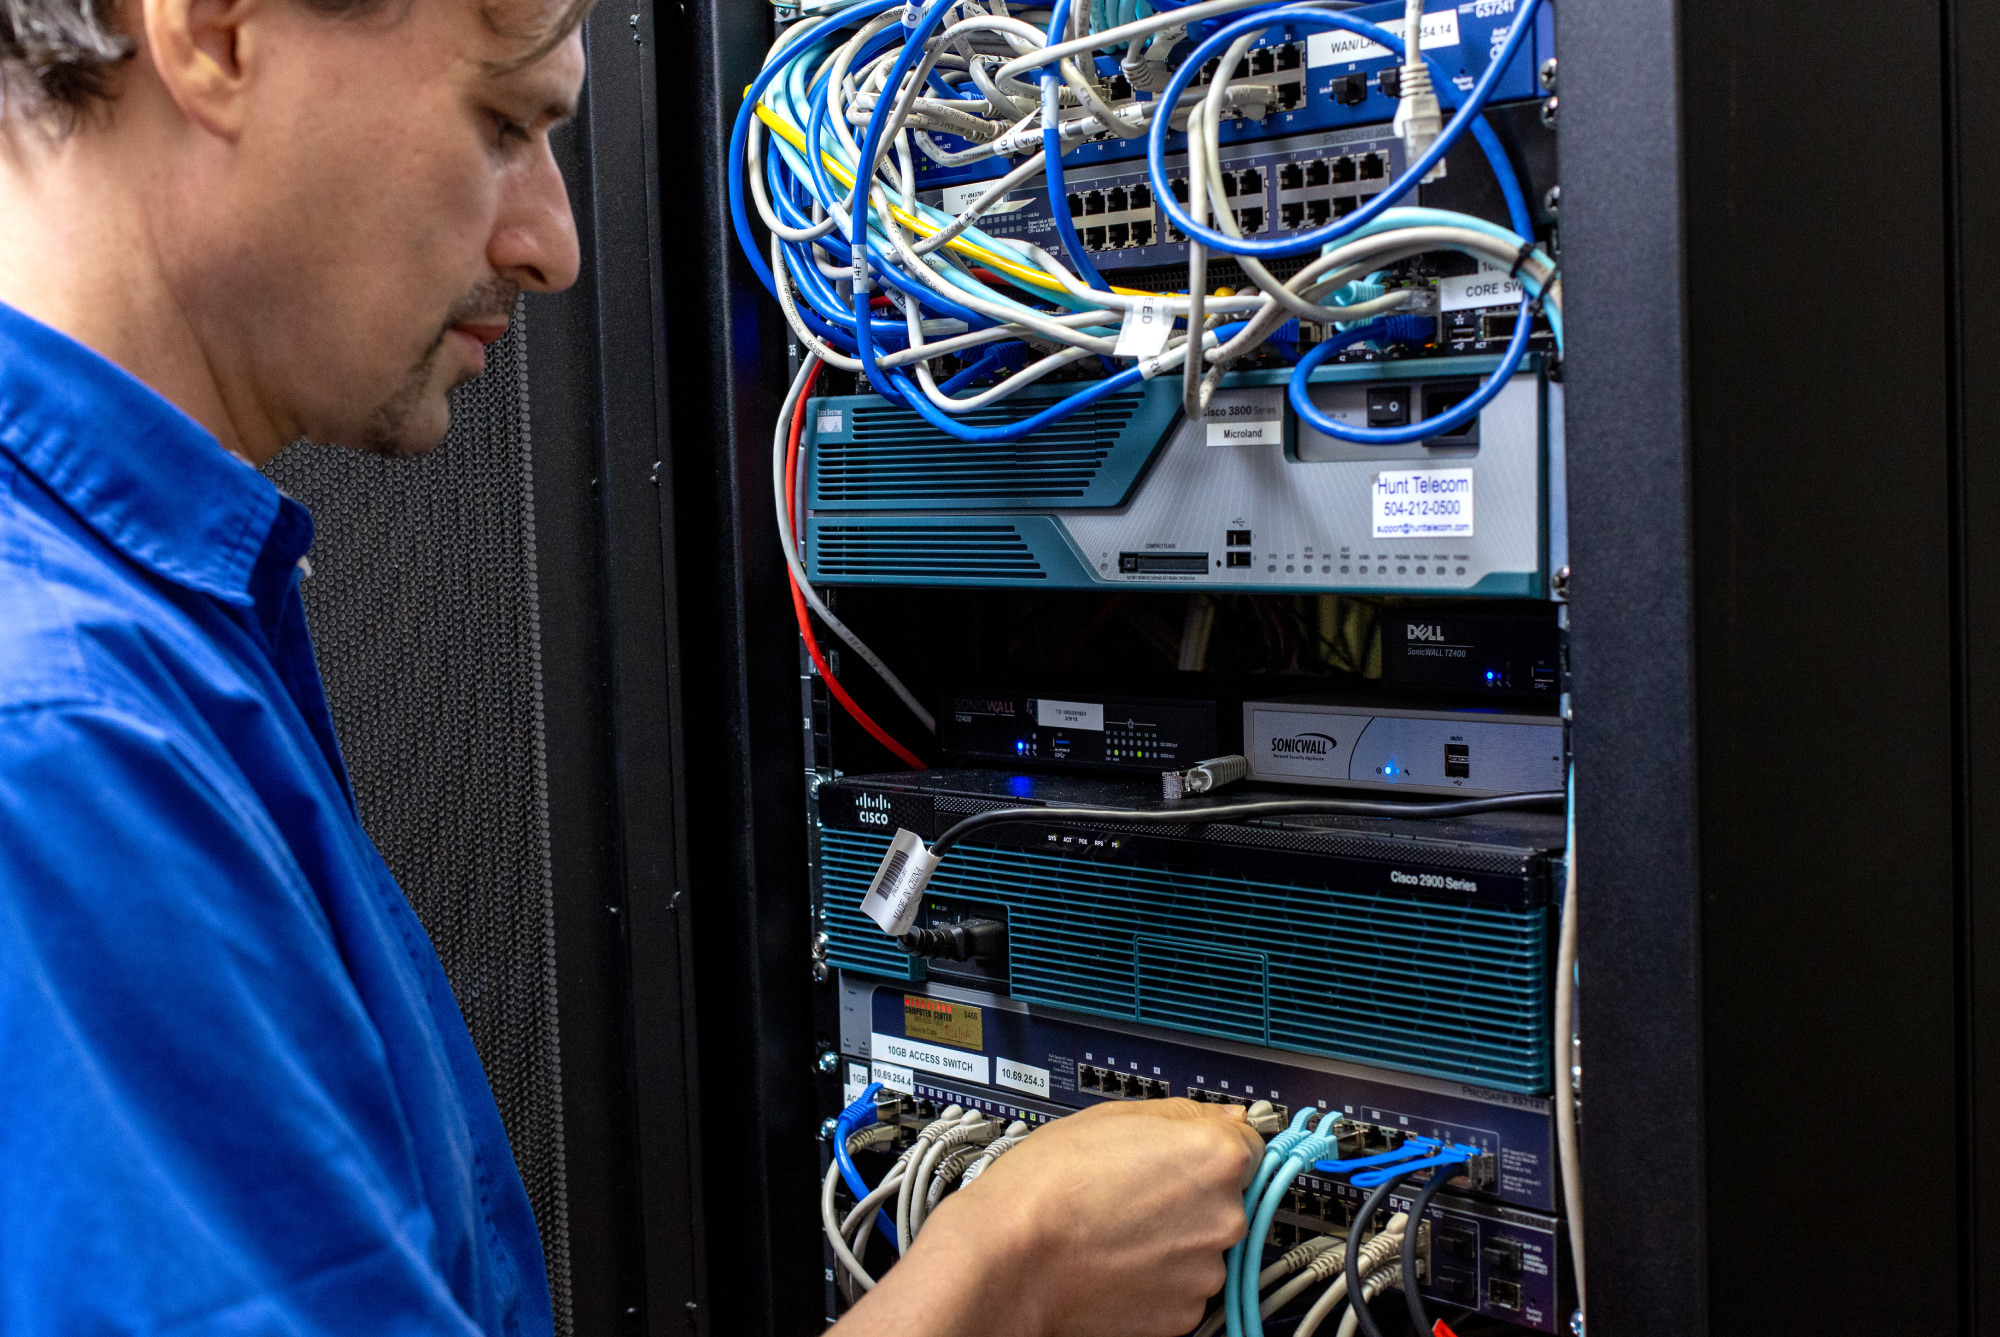 Microland-Computer-Center-IT-Support-Technology-Services-and-Supplies-Louisana-Texas-Servers-Computer-Repair-and-Backup.jpg